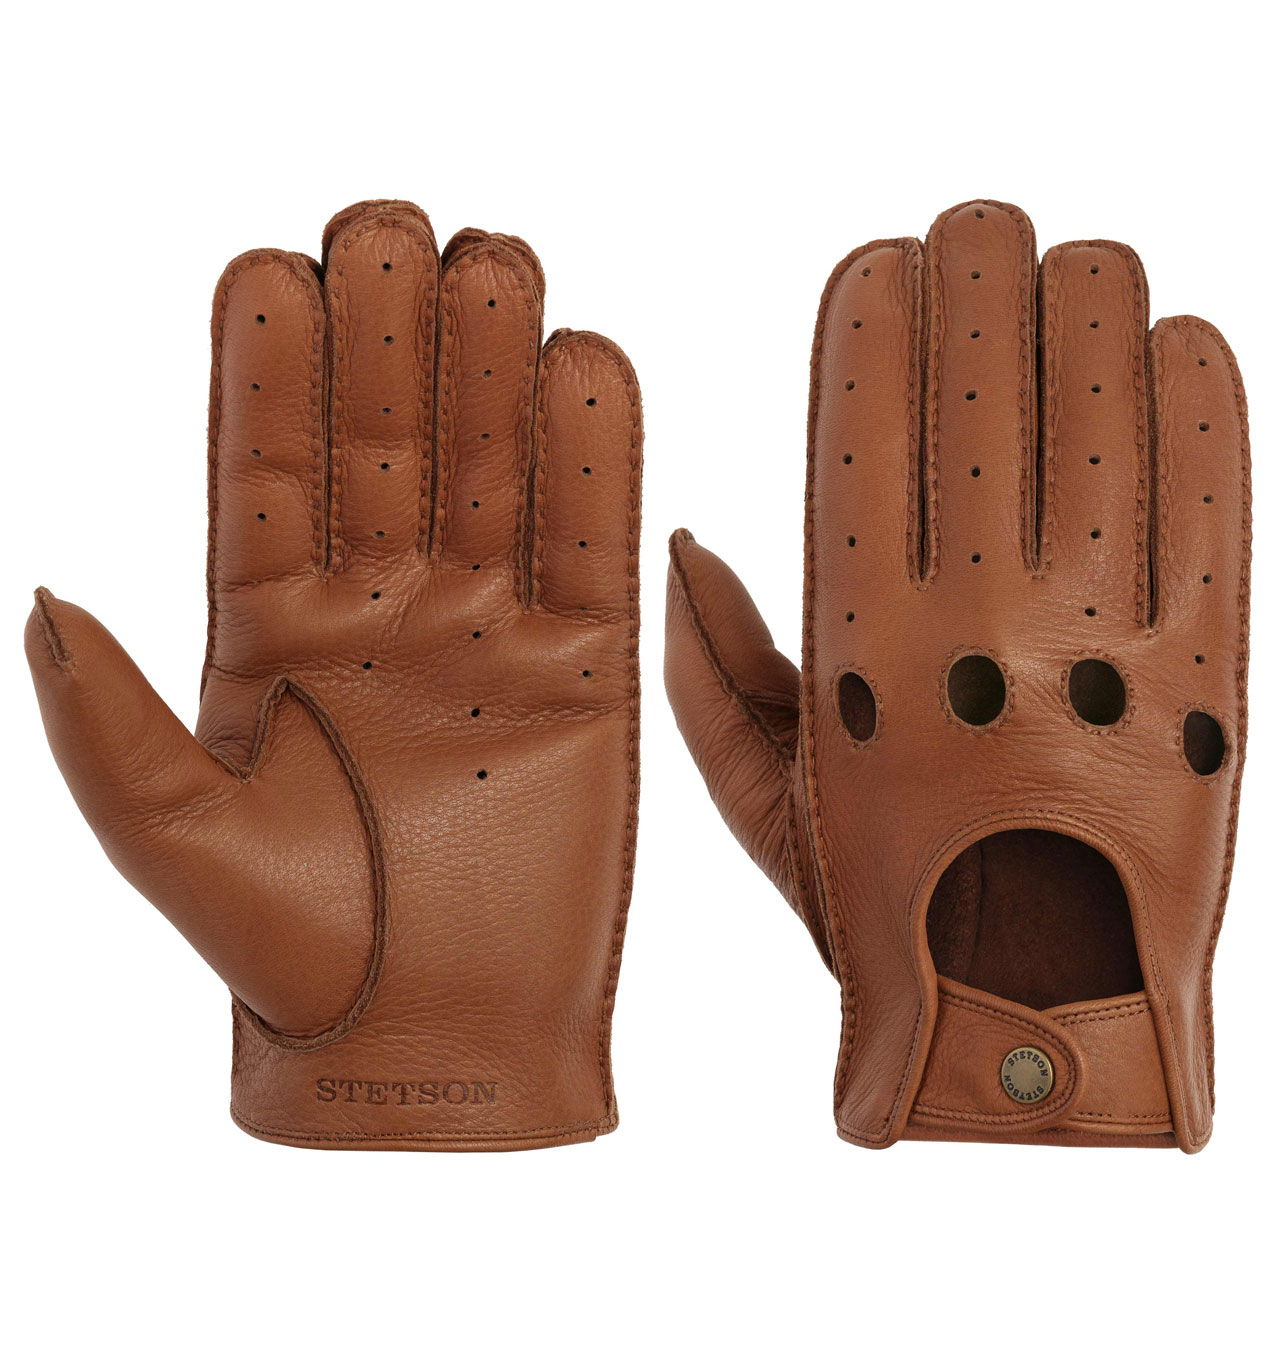 Stetson Gloves Convertible Deer Napa Brown